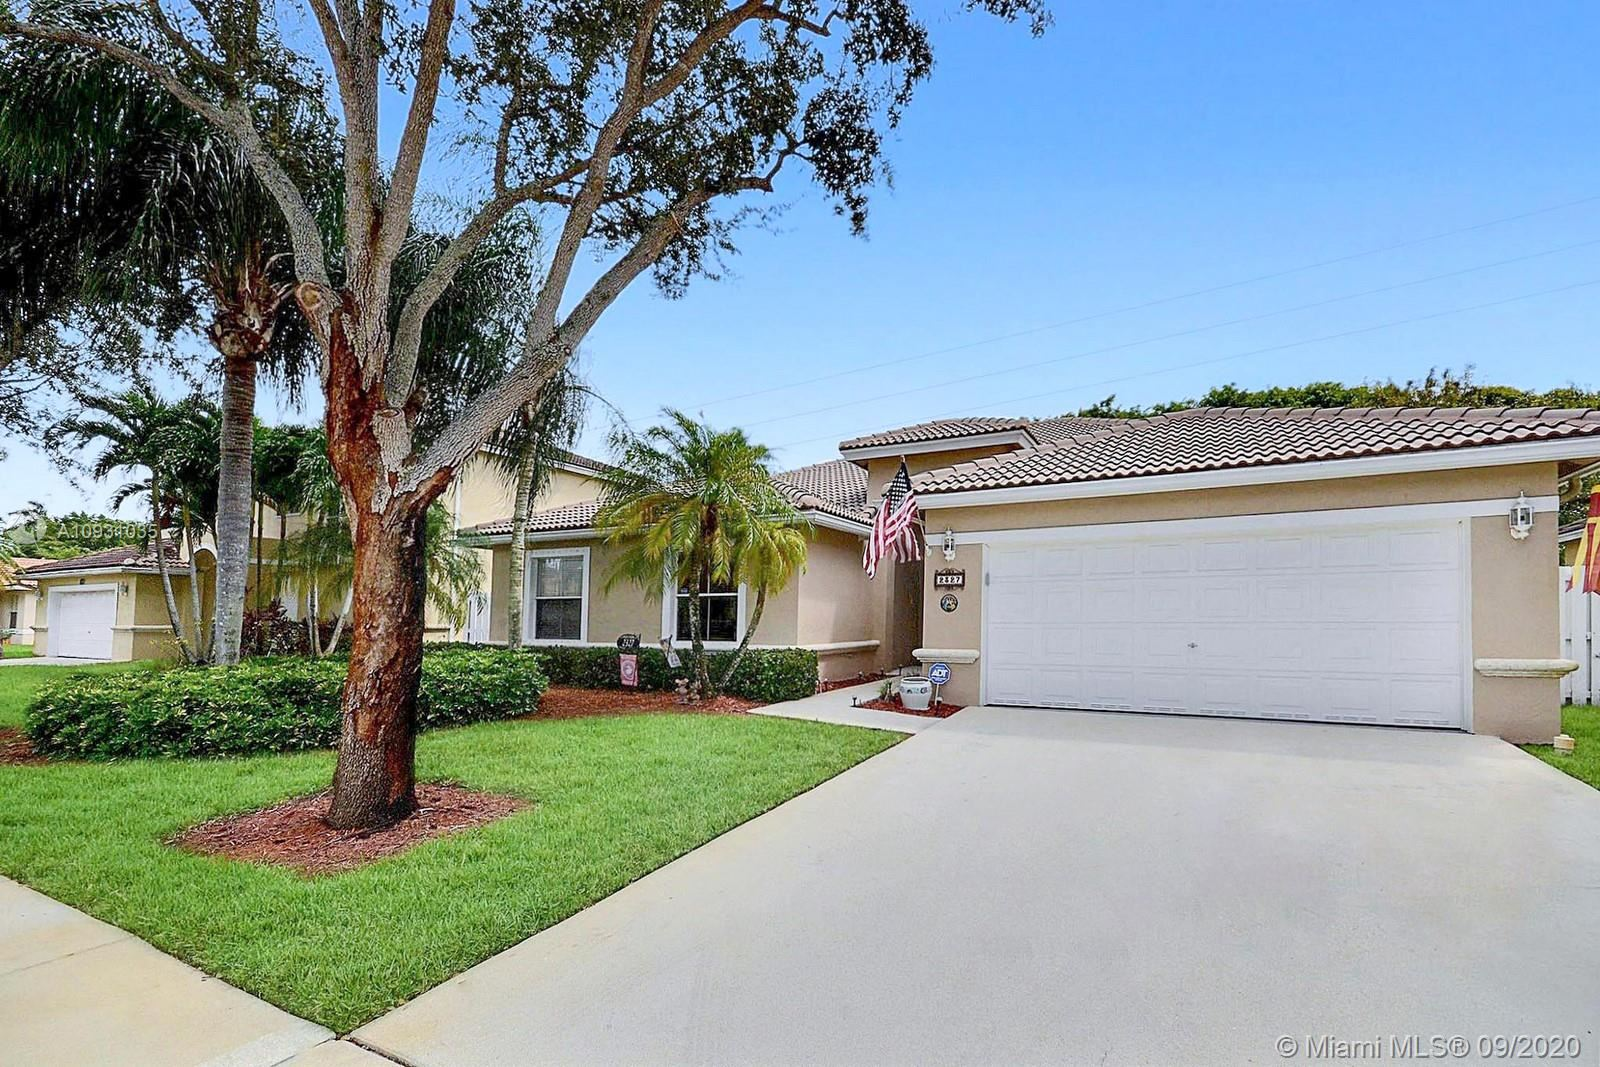 Photo of 2327 NW 184th Ter, Pembroke Pines, FL 33029 (MLS # A10931035)